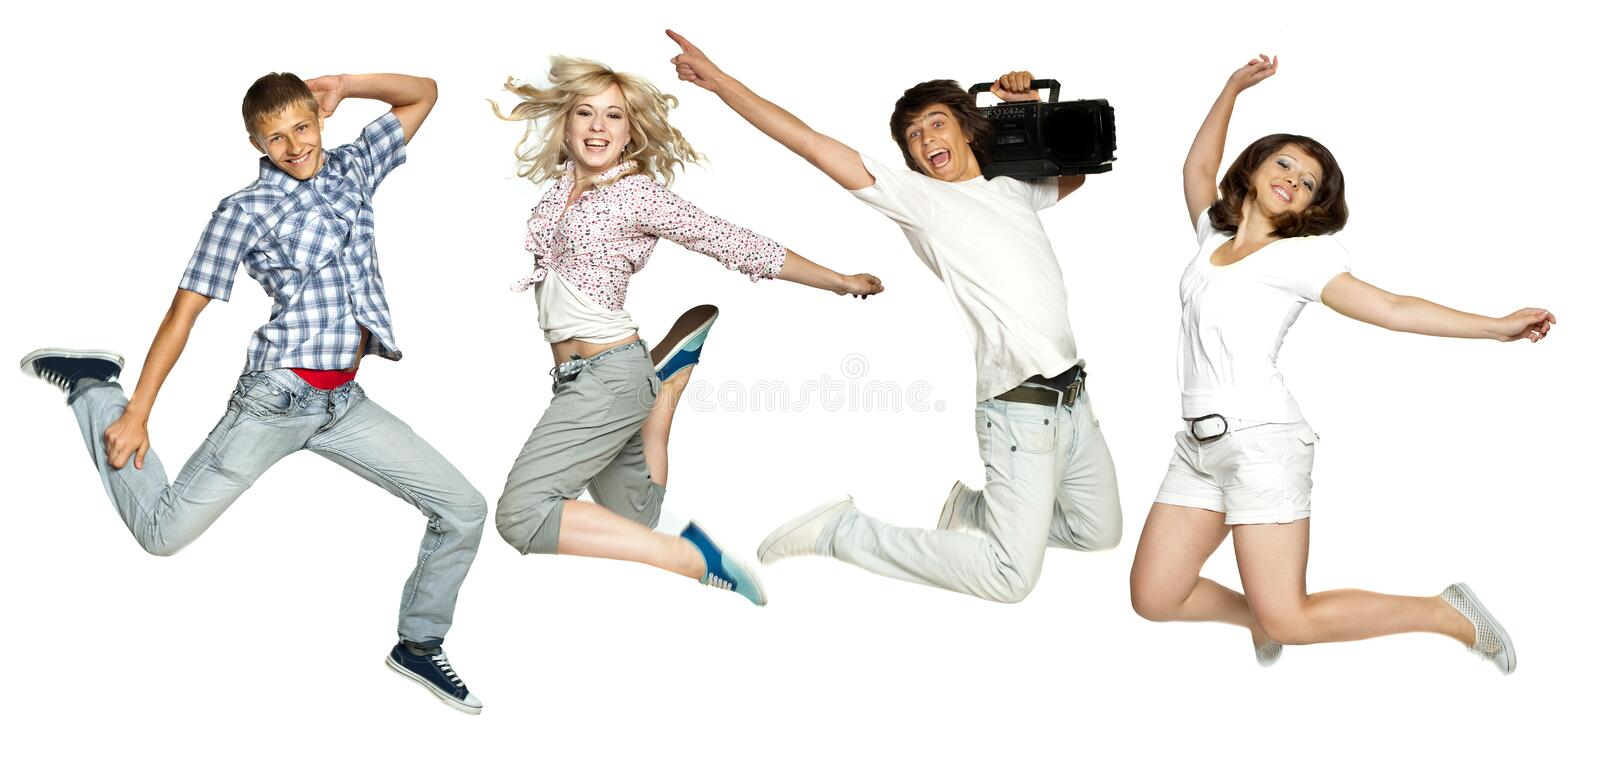 Guys And Girls Jump Royalty Free Stock Image